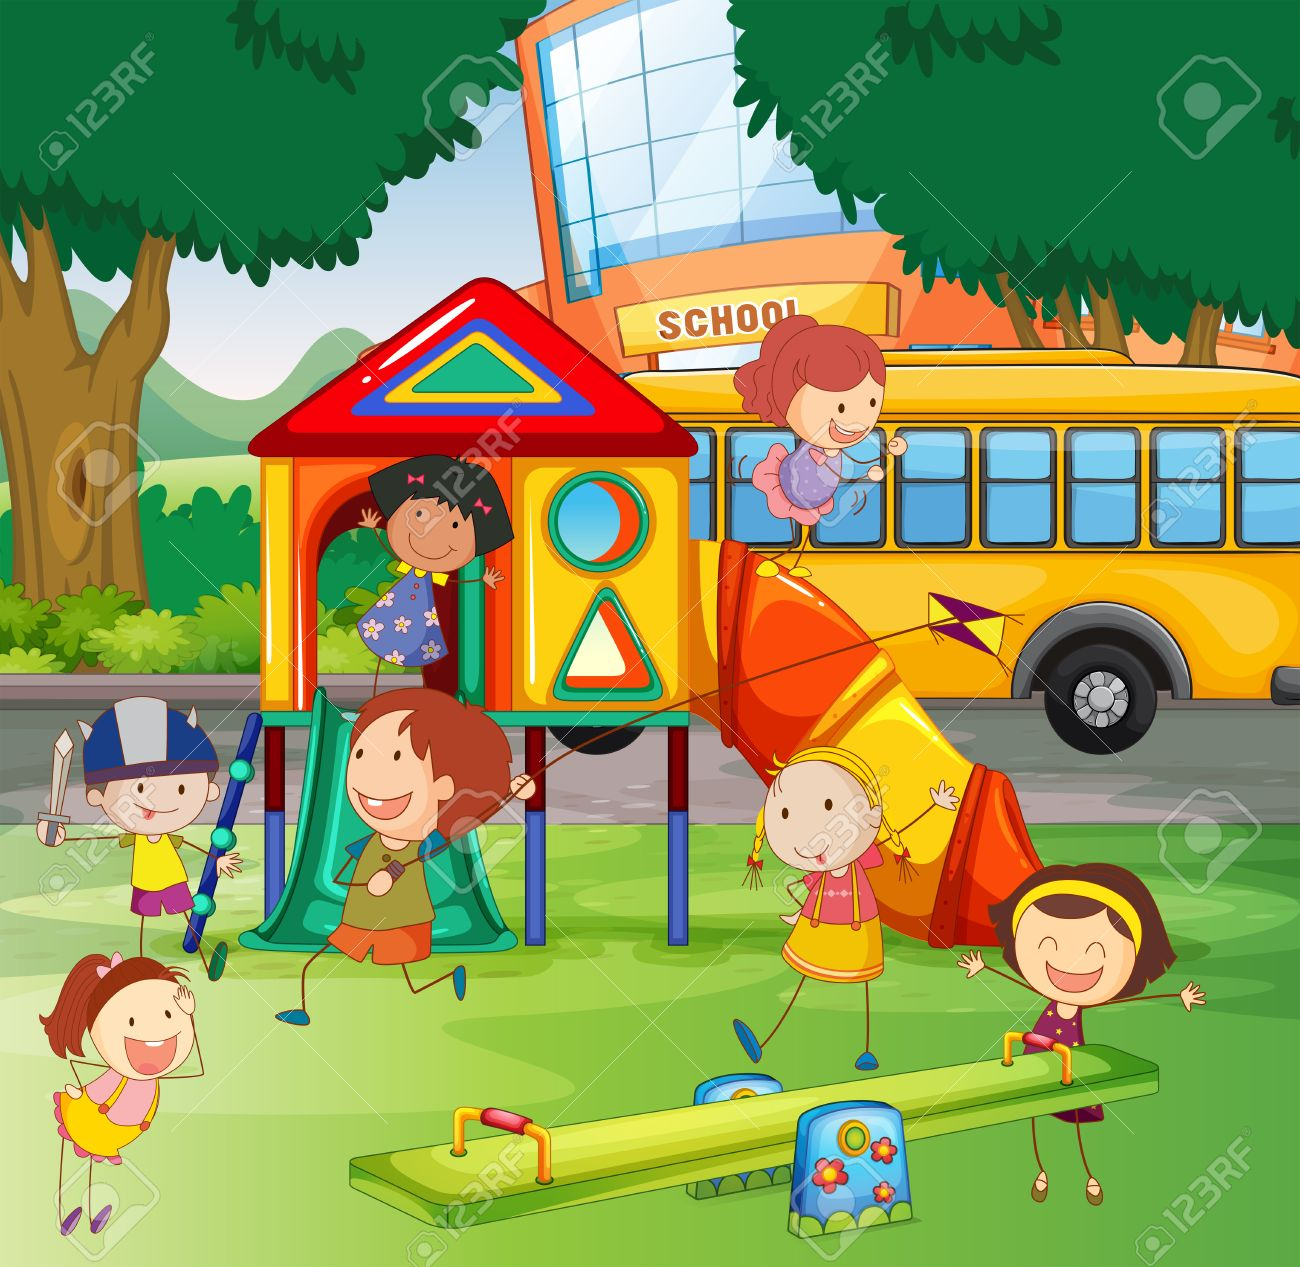 Children playing in the school playground » Clipart Station.